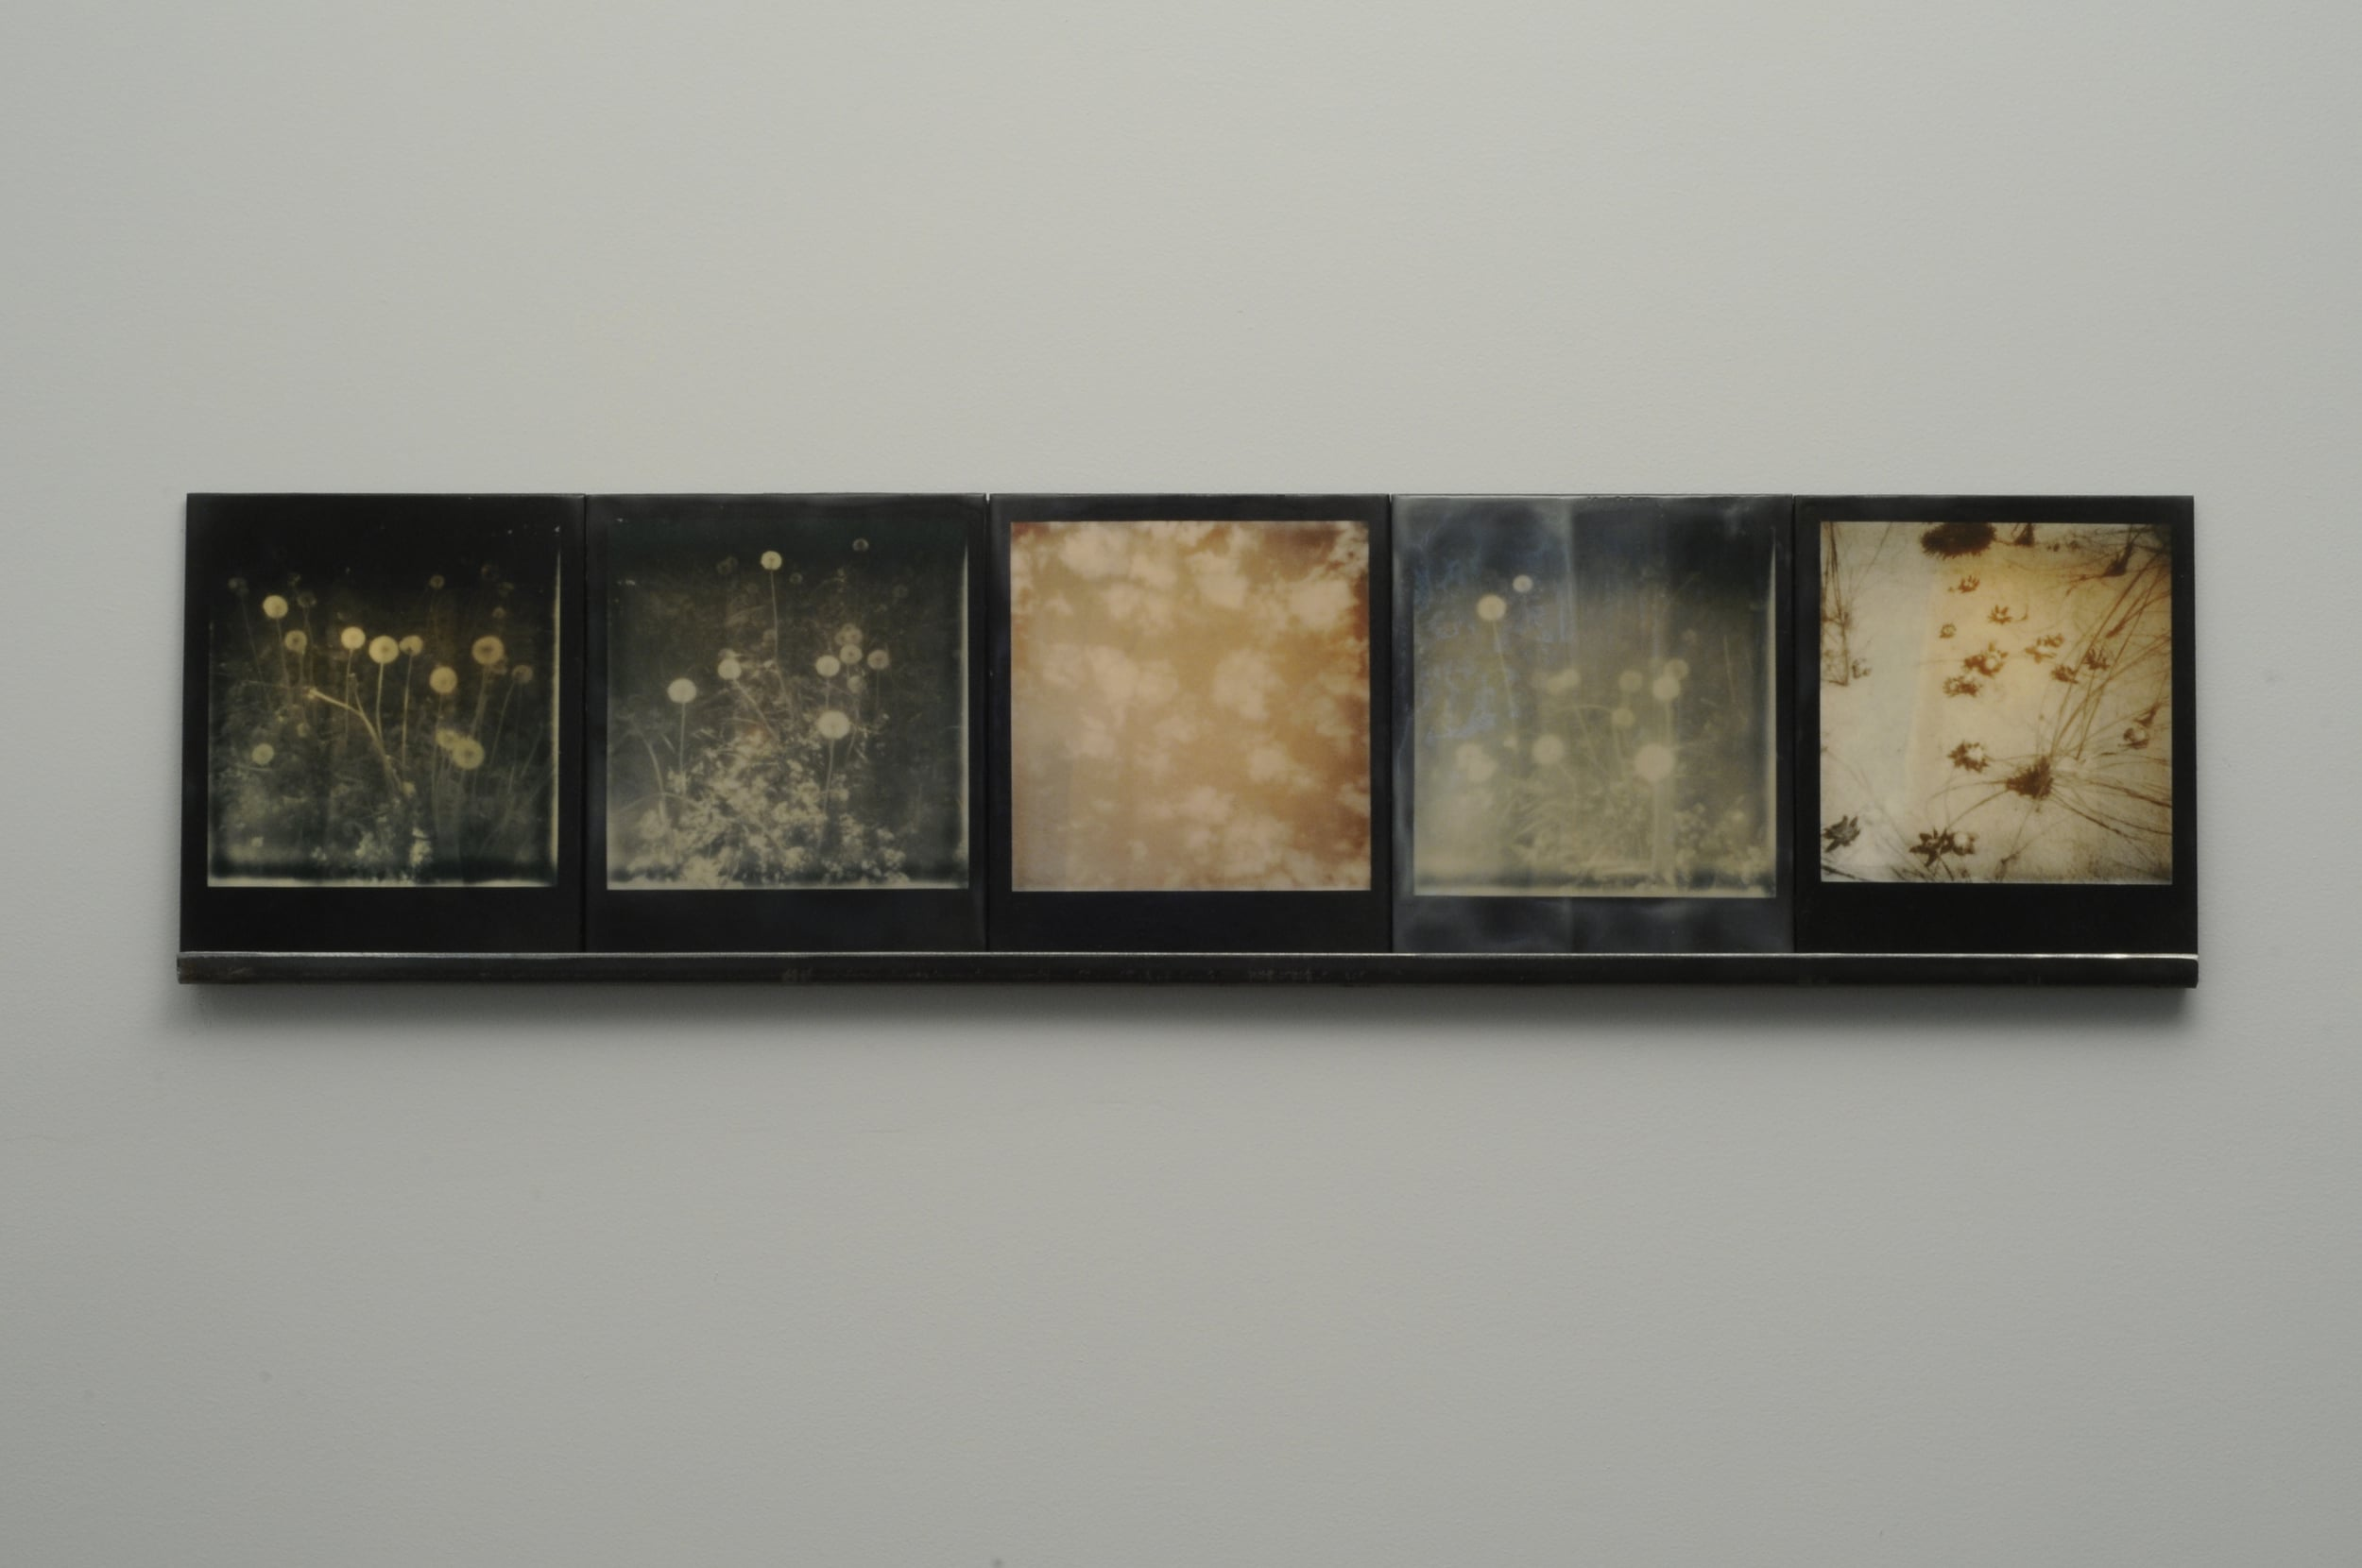 """Starfall 1  , 2014-15, pigment prints on cotton and panel with encaustic medium and steel shelf, 8.5"""" x 35.25""""  variable edition of 2 and 1 artist proof"""